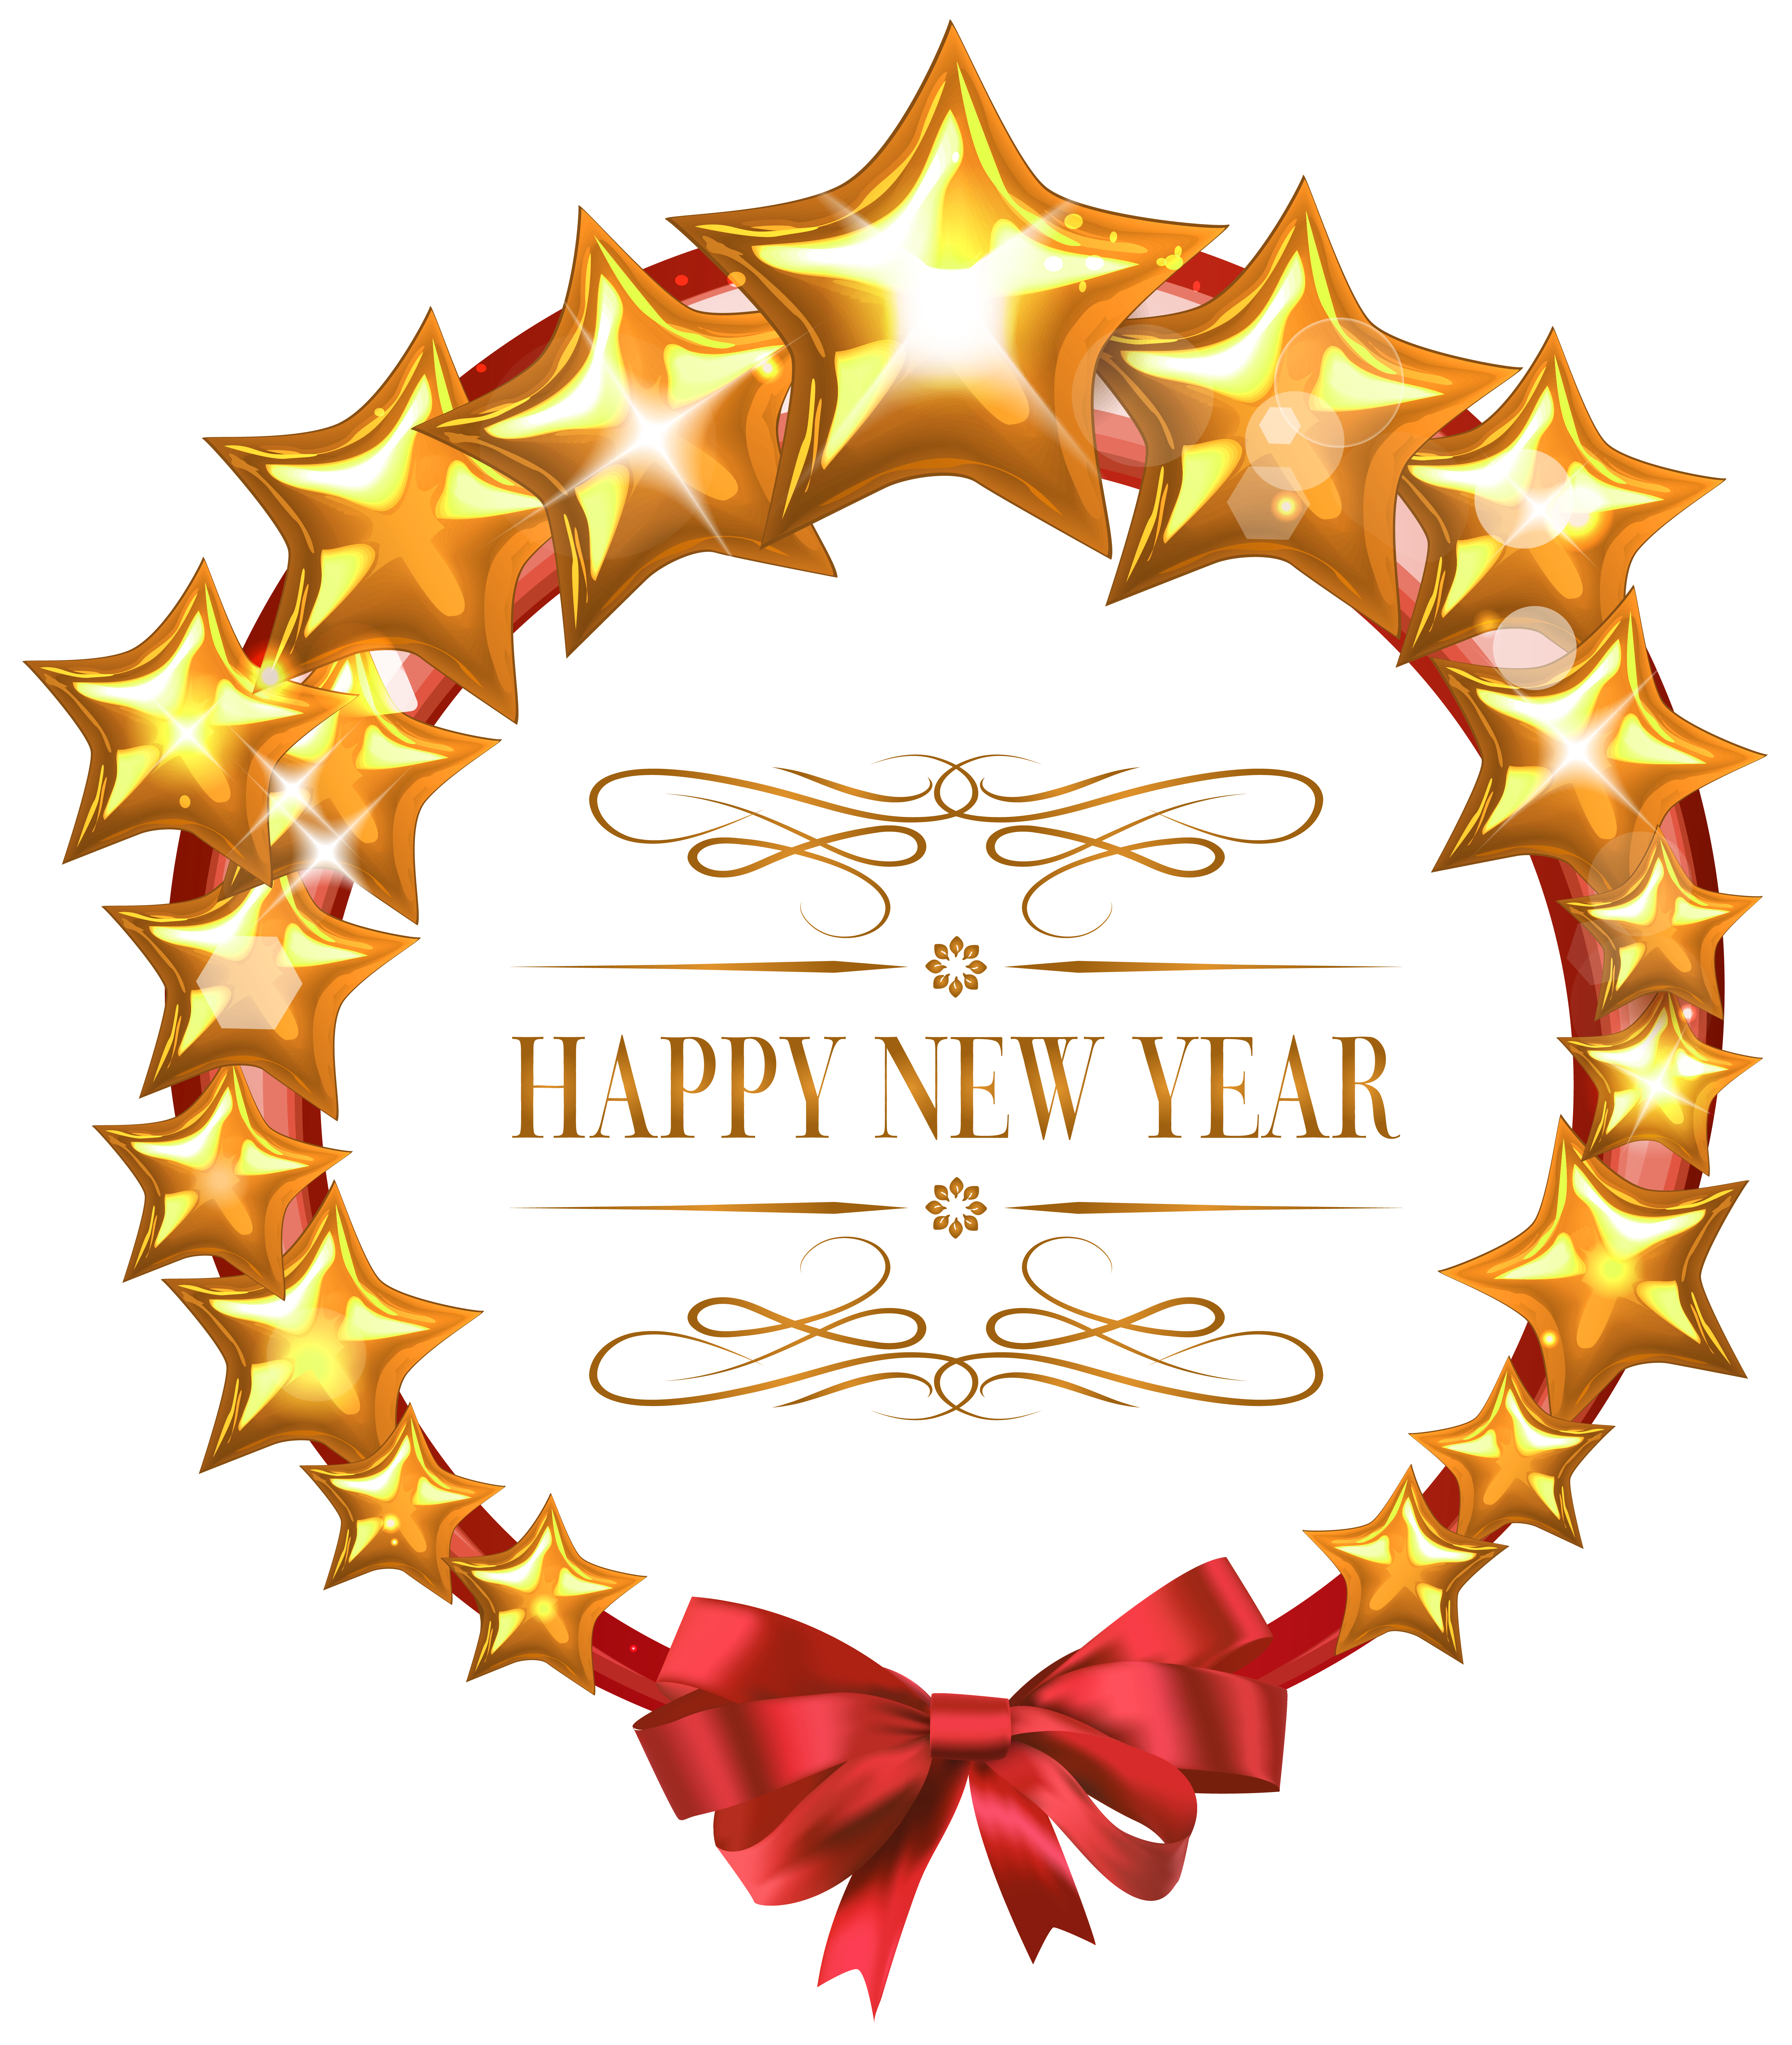 Happy stars oval decor. Glasses clipart new year